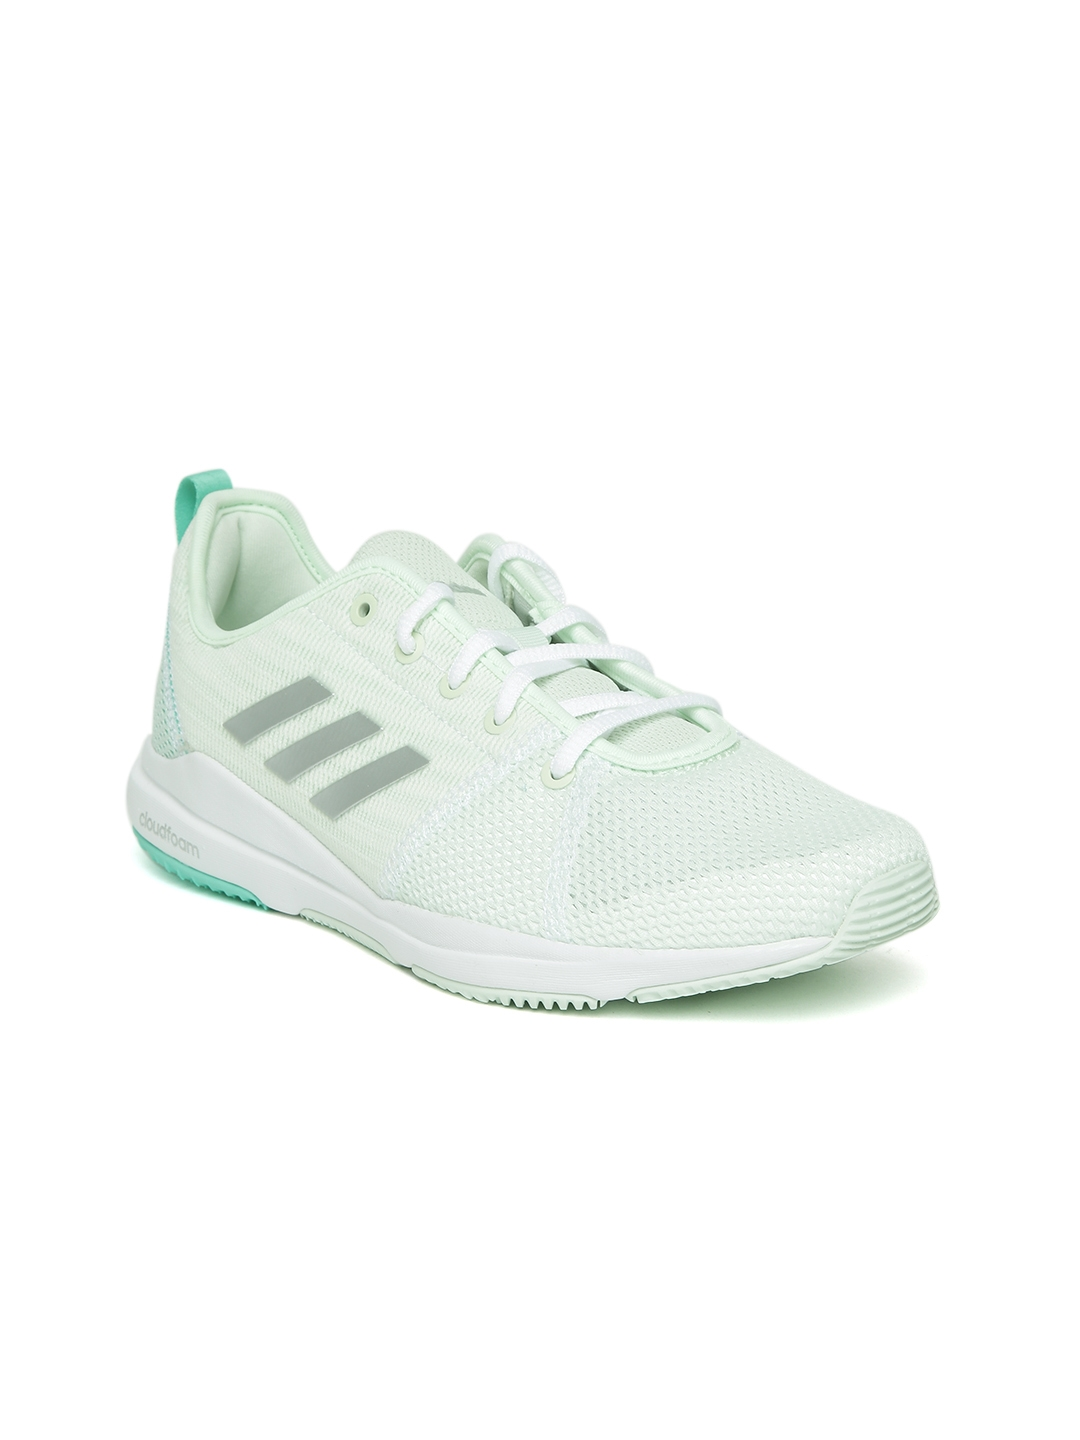 d146c870bf9 Buy ADIDAS Women Green ARIANNA CLOUDFOAM Training Shoes - Sports ...